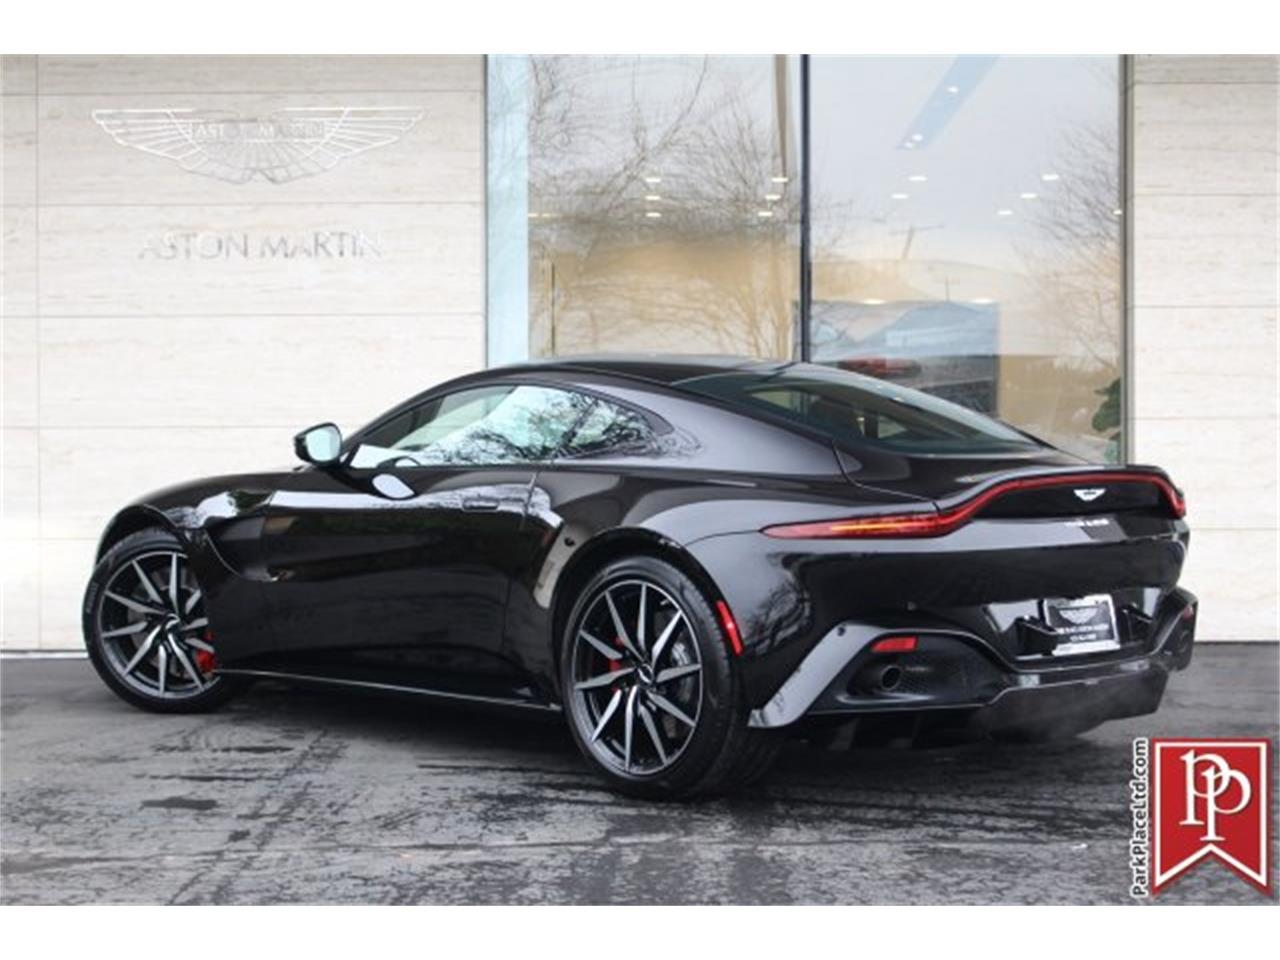 2019 Aston Martin Vantage for sale in Bellevue, WA – photo 11